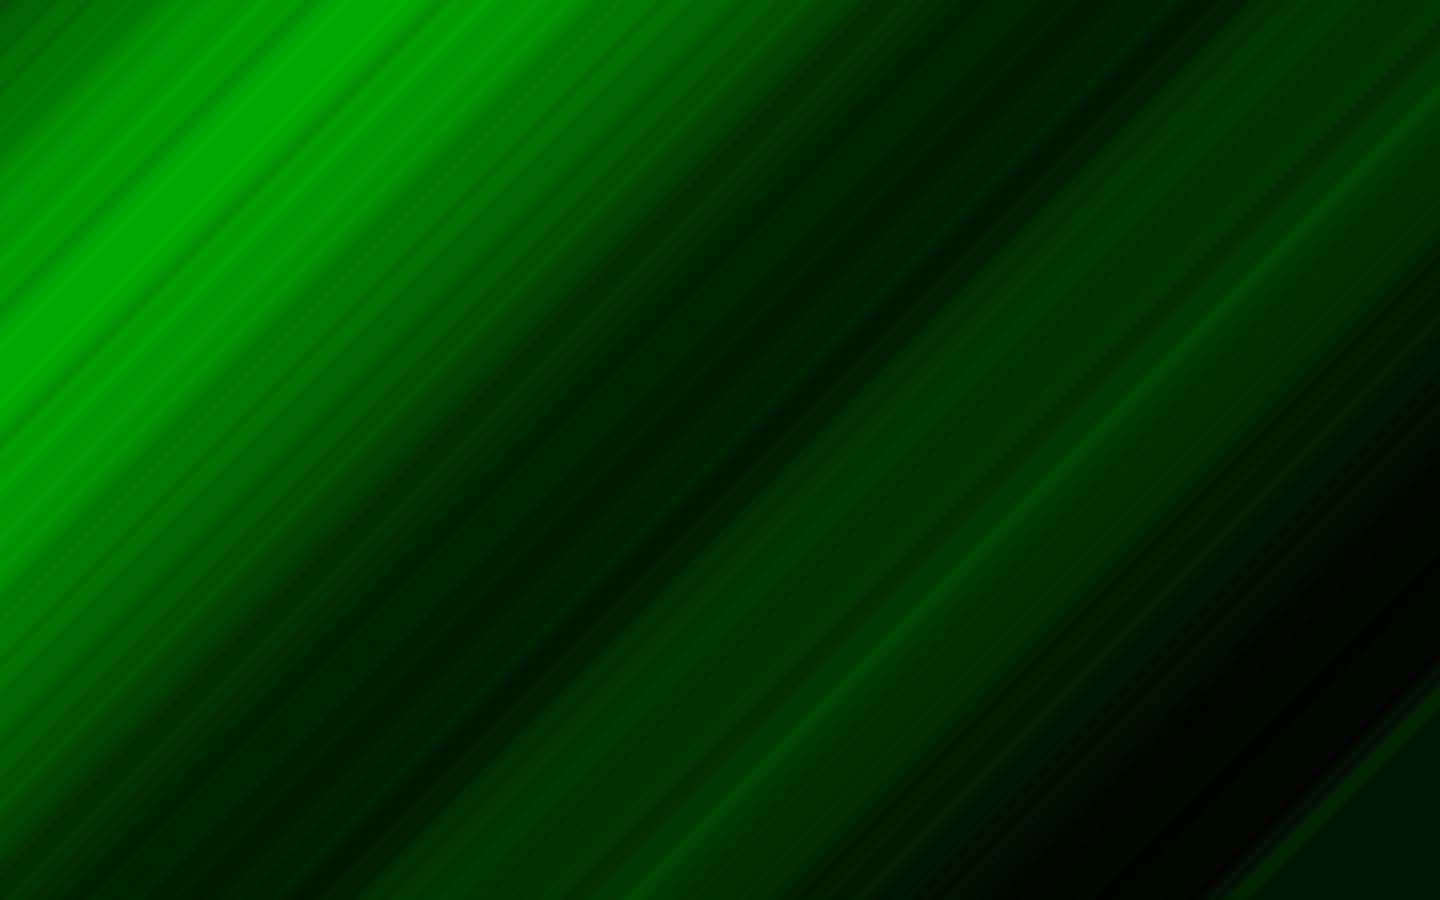 [50+] Green Abstract Wallpaper on WallpaperSafariGreen Abstract Wallpaper Hd